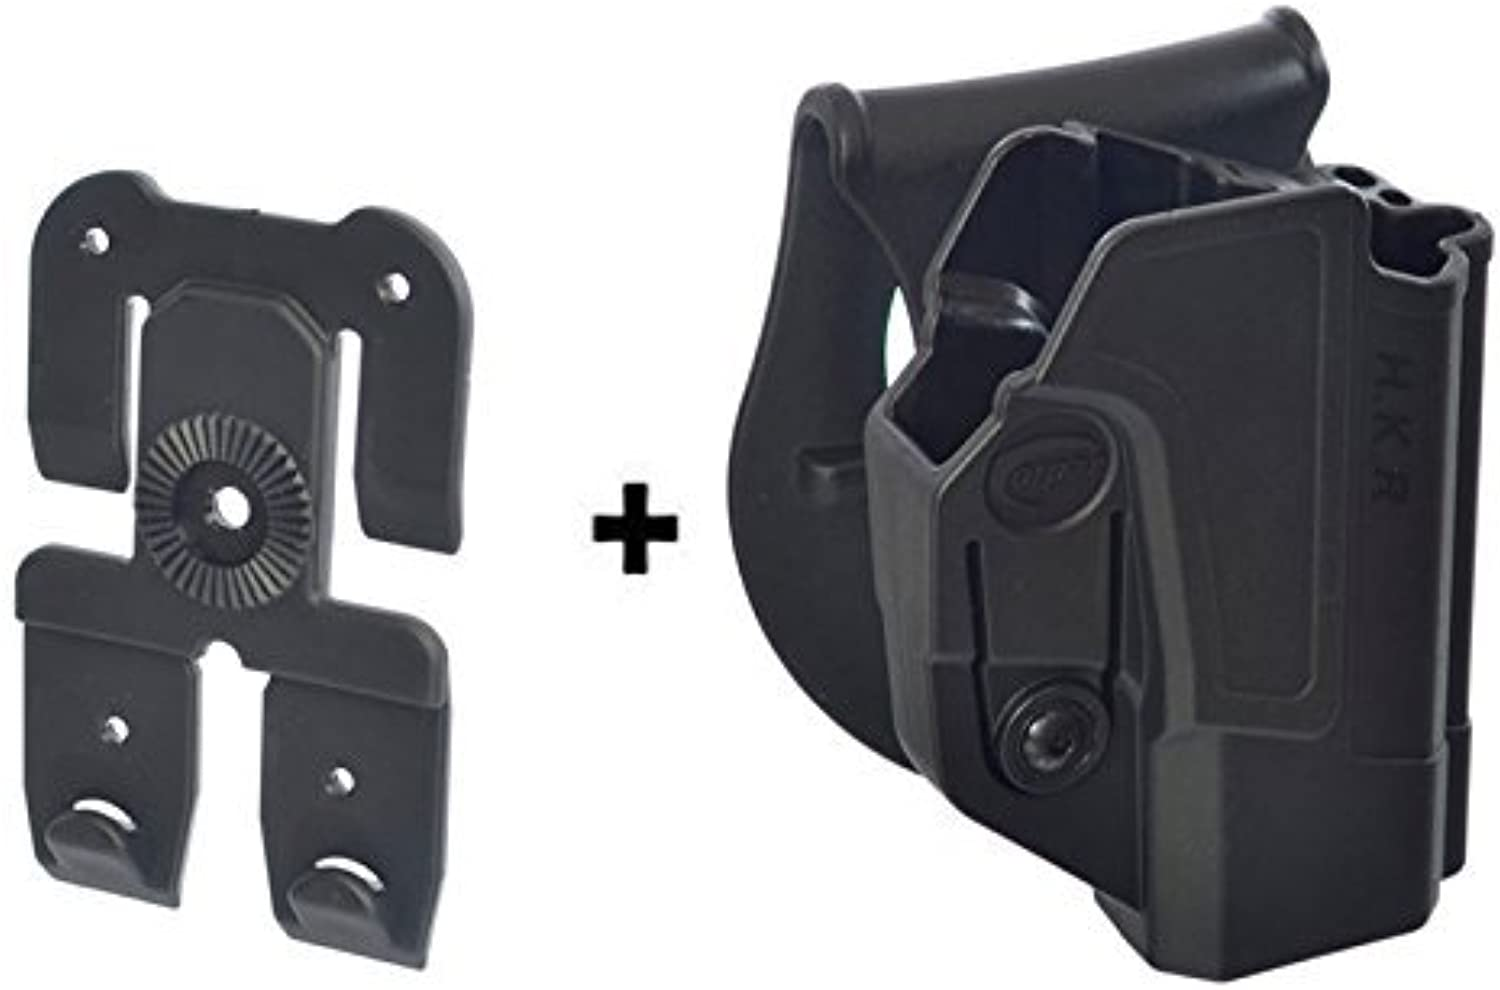 ORPAZ Defense Active Retention ajustment redO redation Tactical Paddle Holster + Molle Adapter Attachment for Heckler Koch H&K HK P30   USP Compact 9   .40   USP  45. 45C. BUL M5